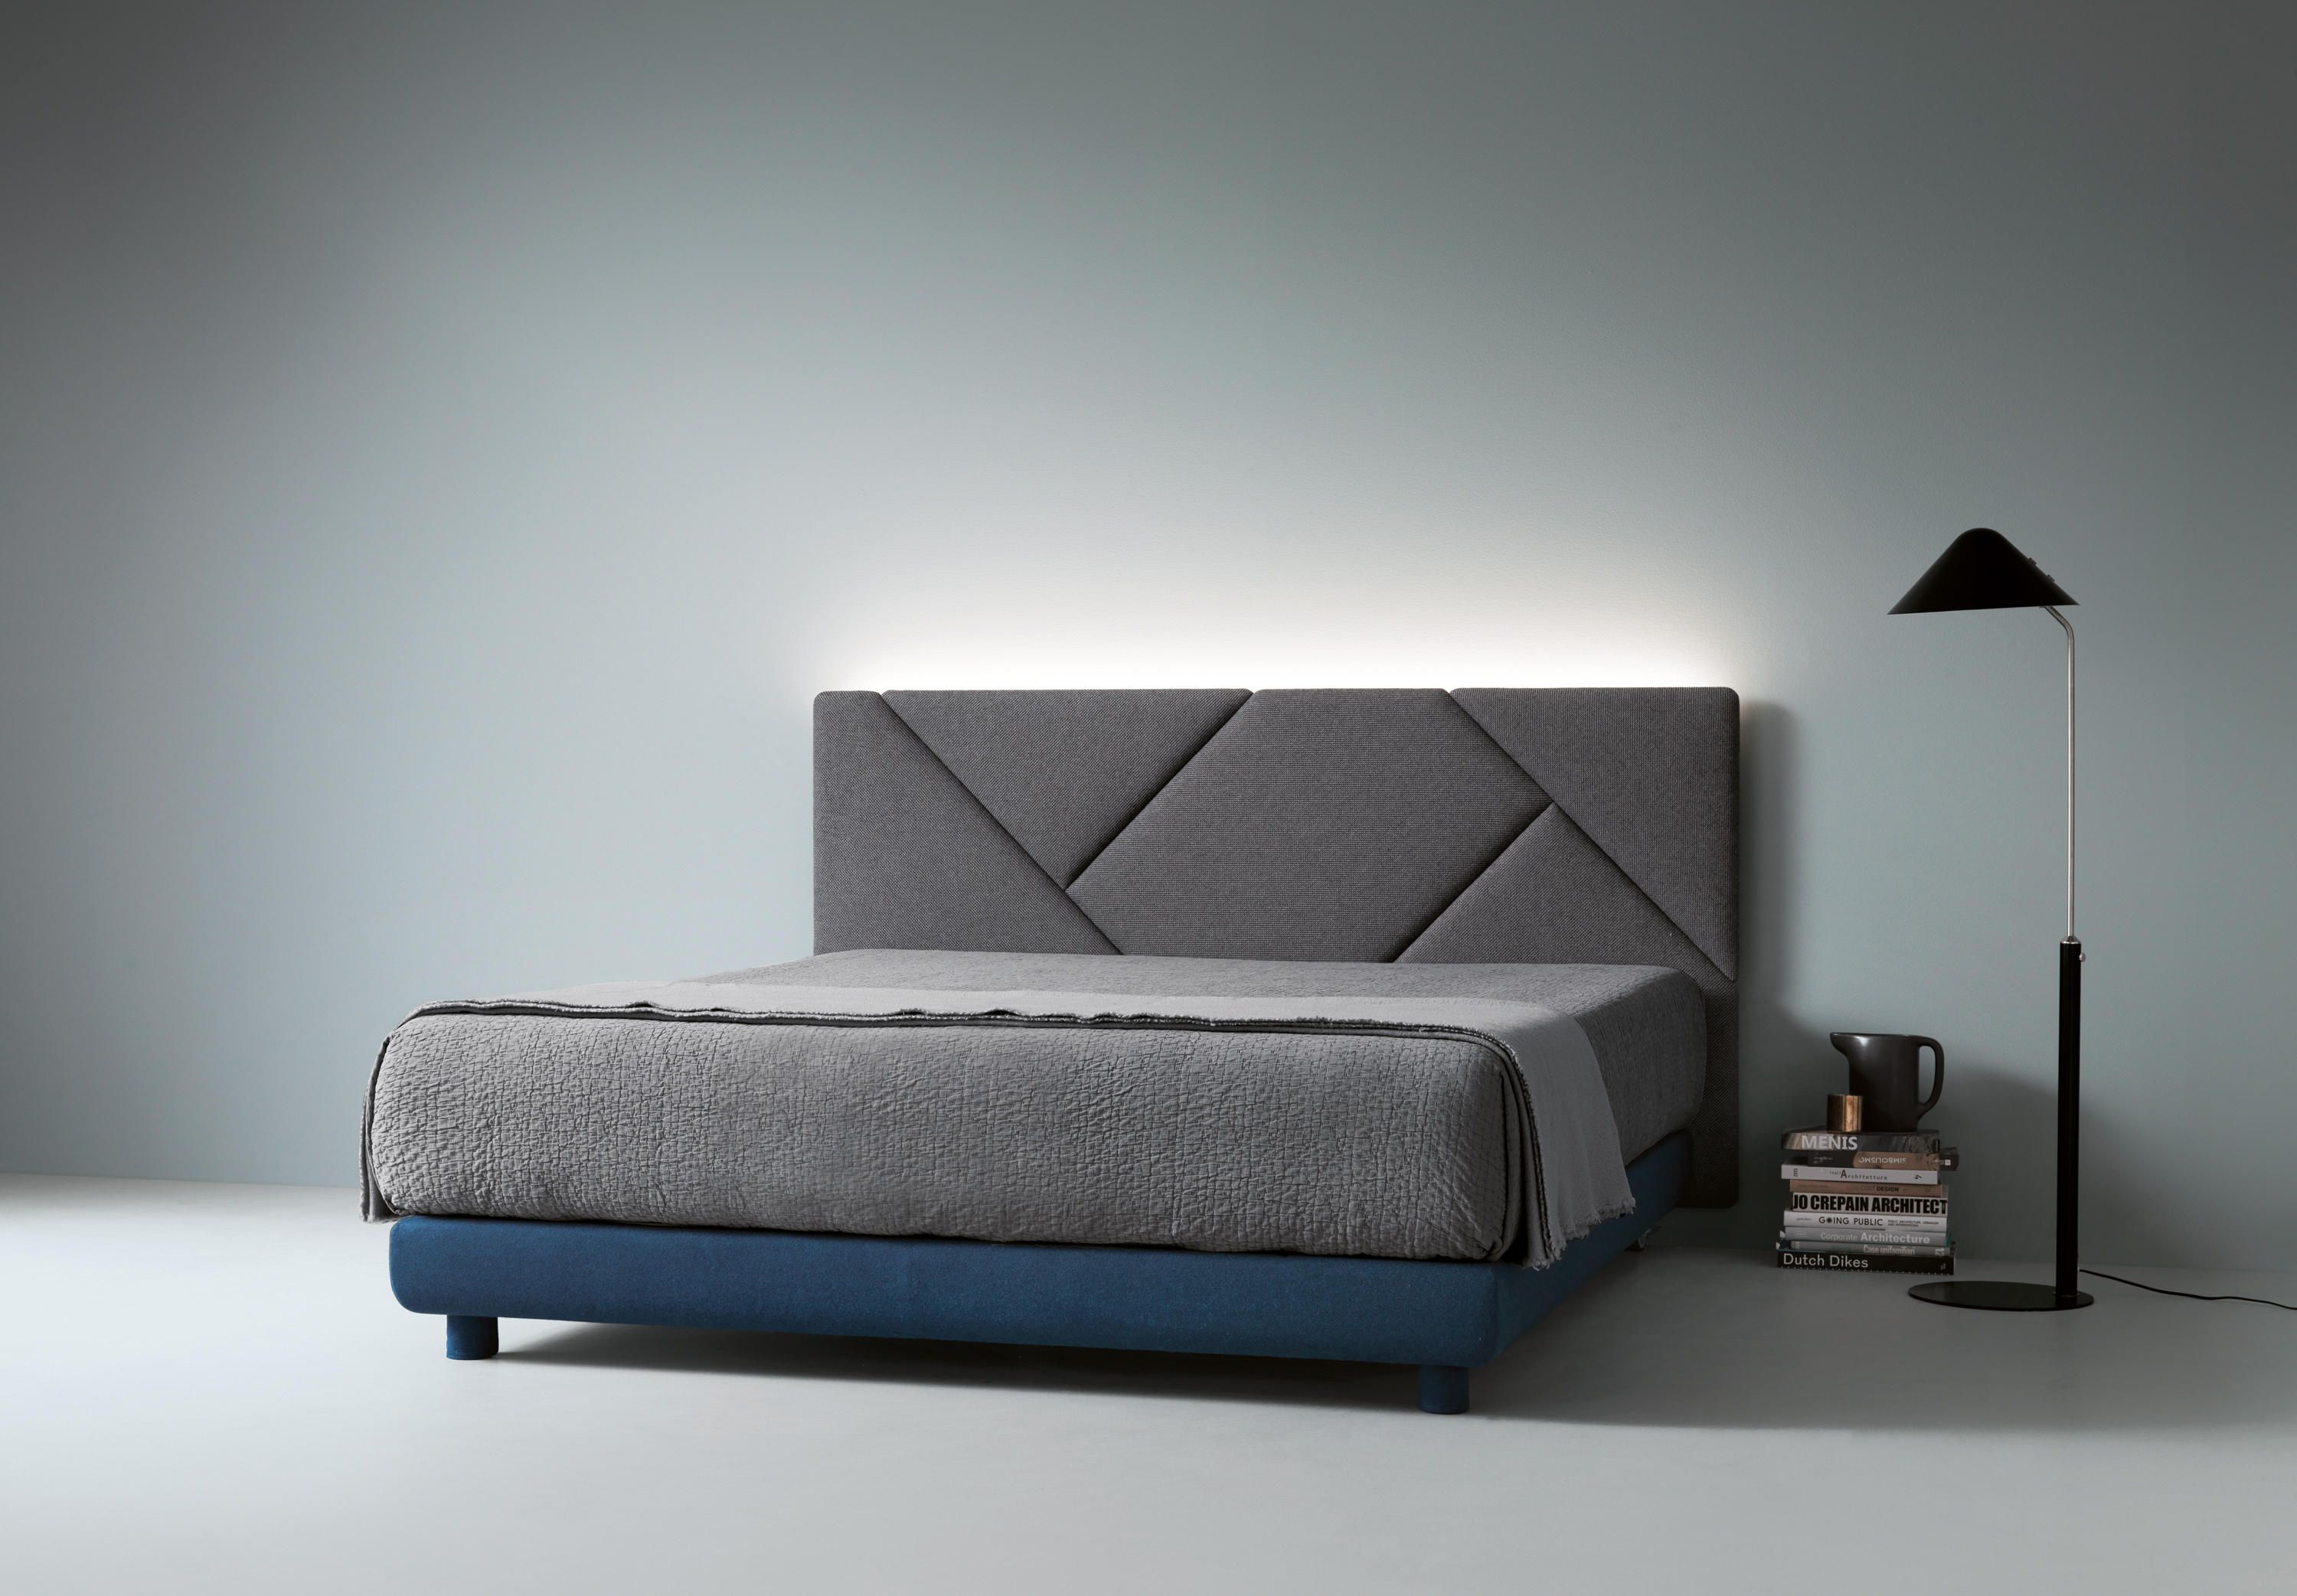 Opus Bed Designer Double Beds From Caccaro All Information